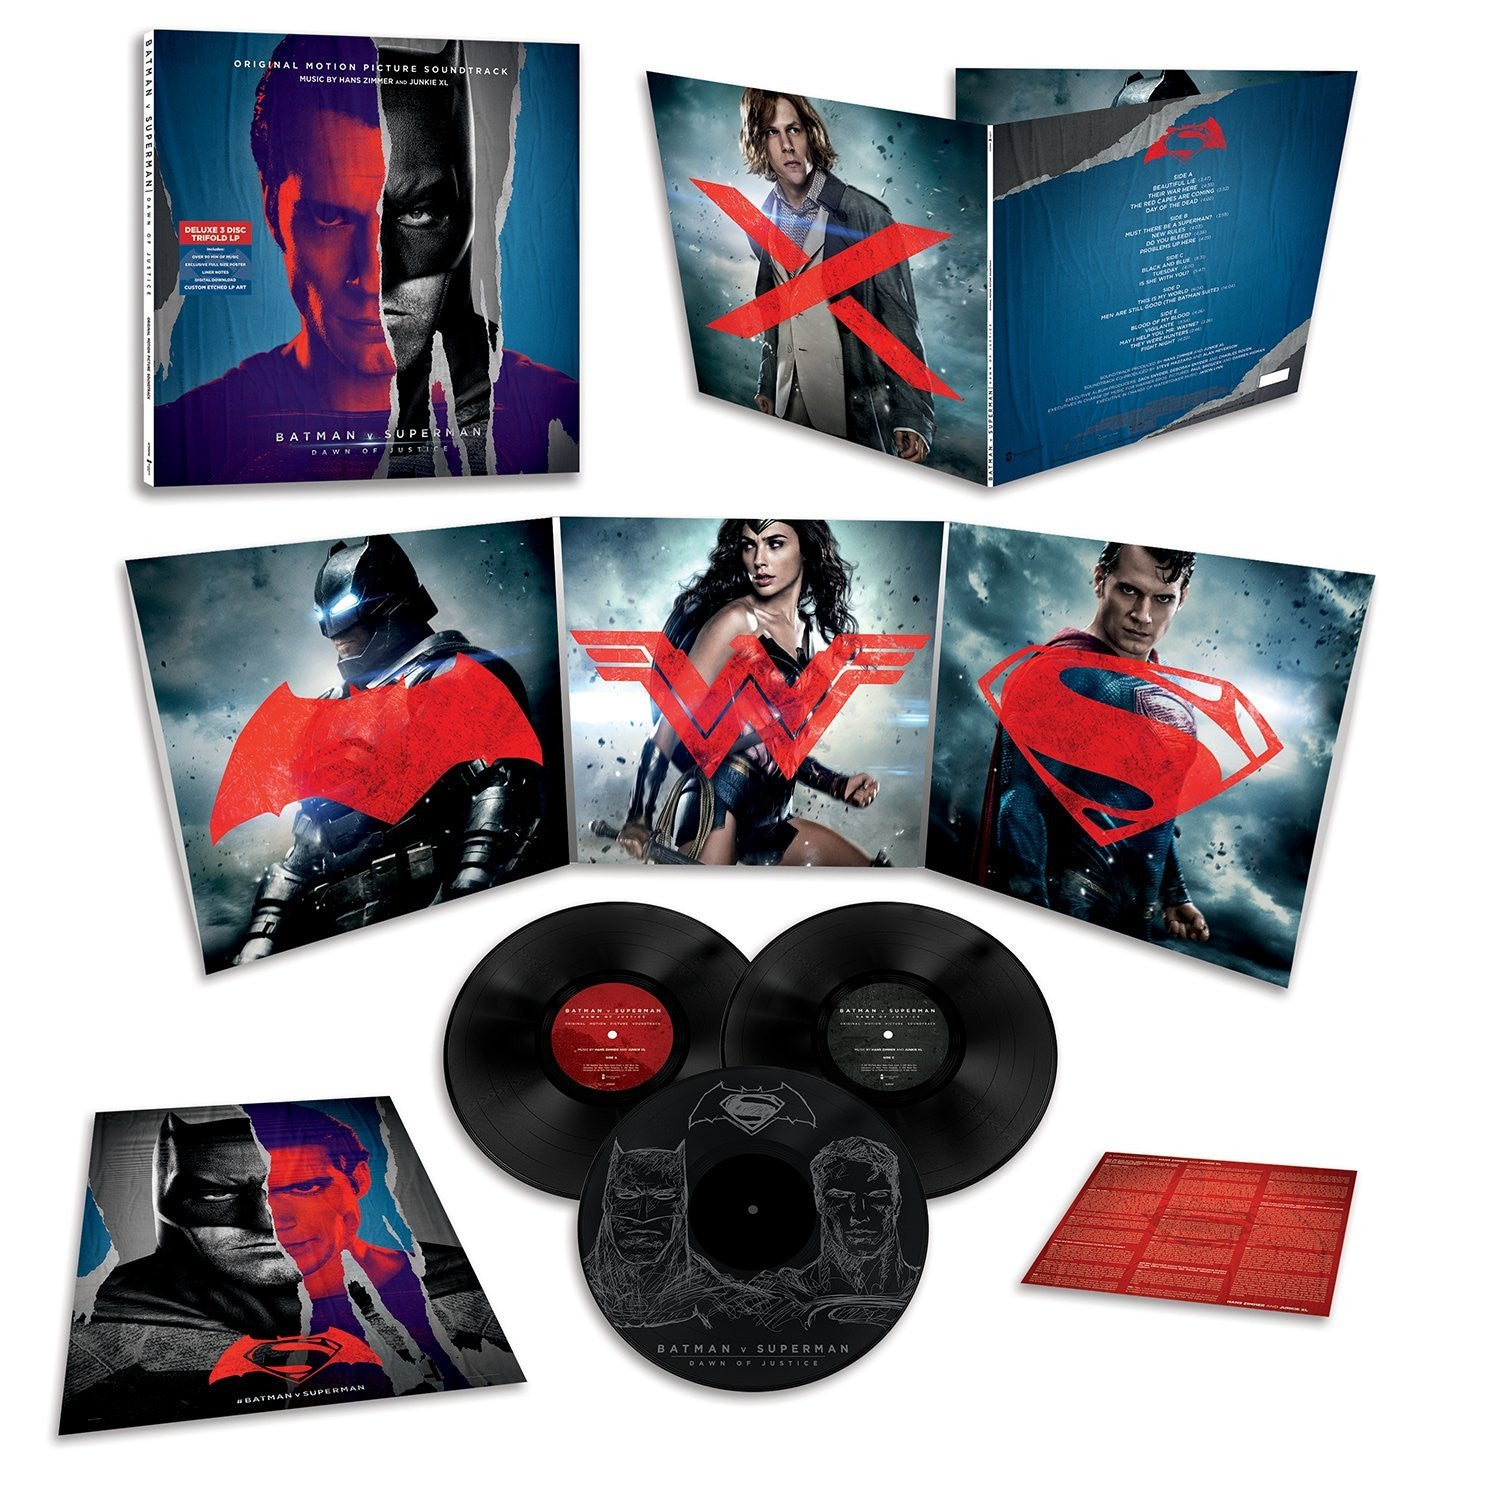 Hans Zimmer & Junkie XL - Batman Vs. Superman OST 3xLP